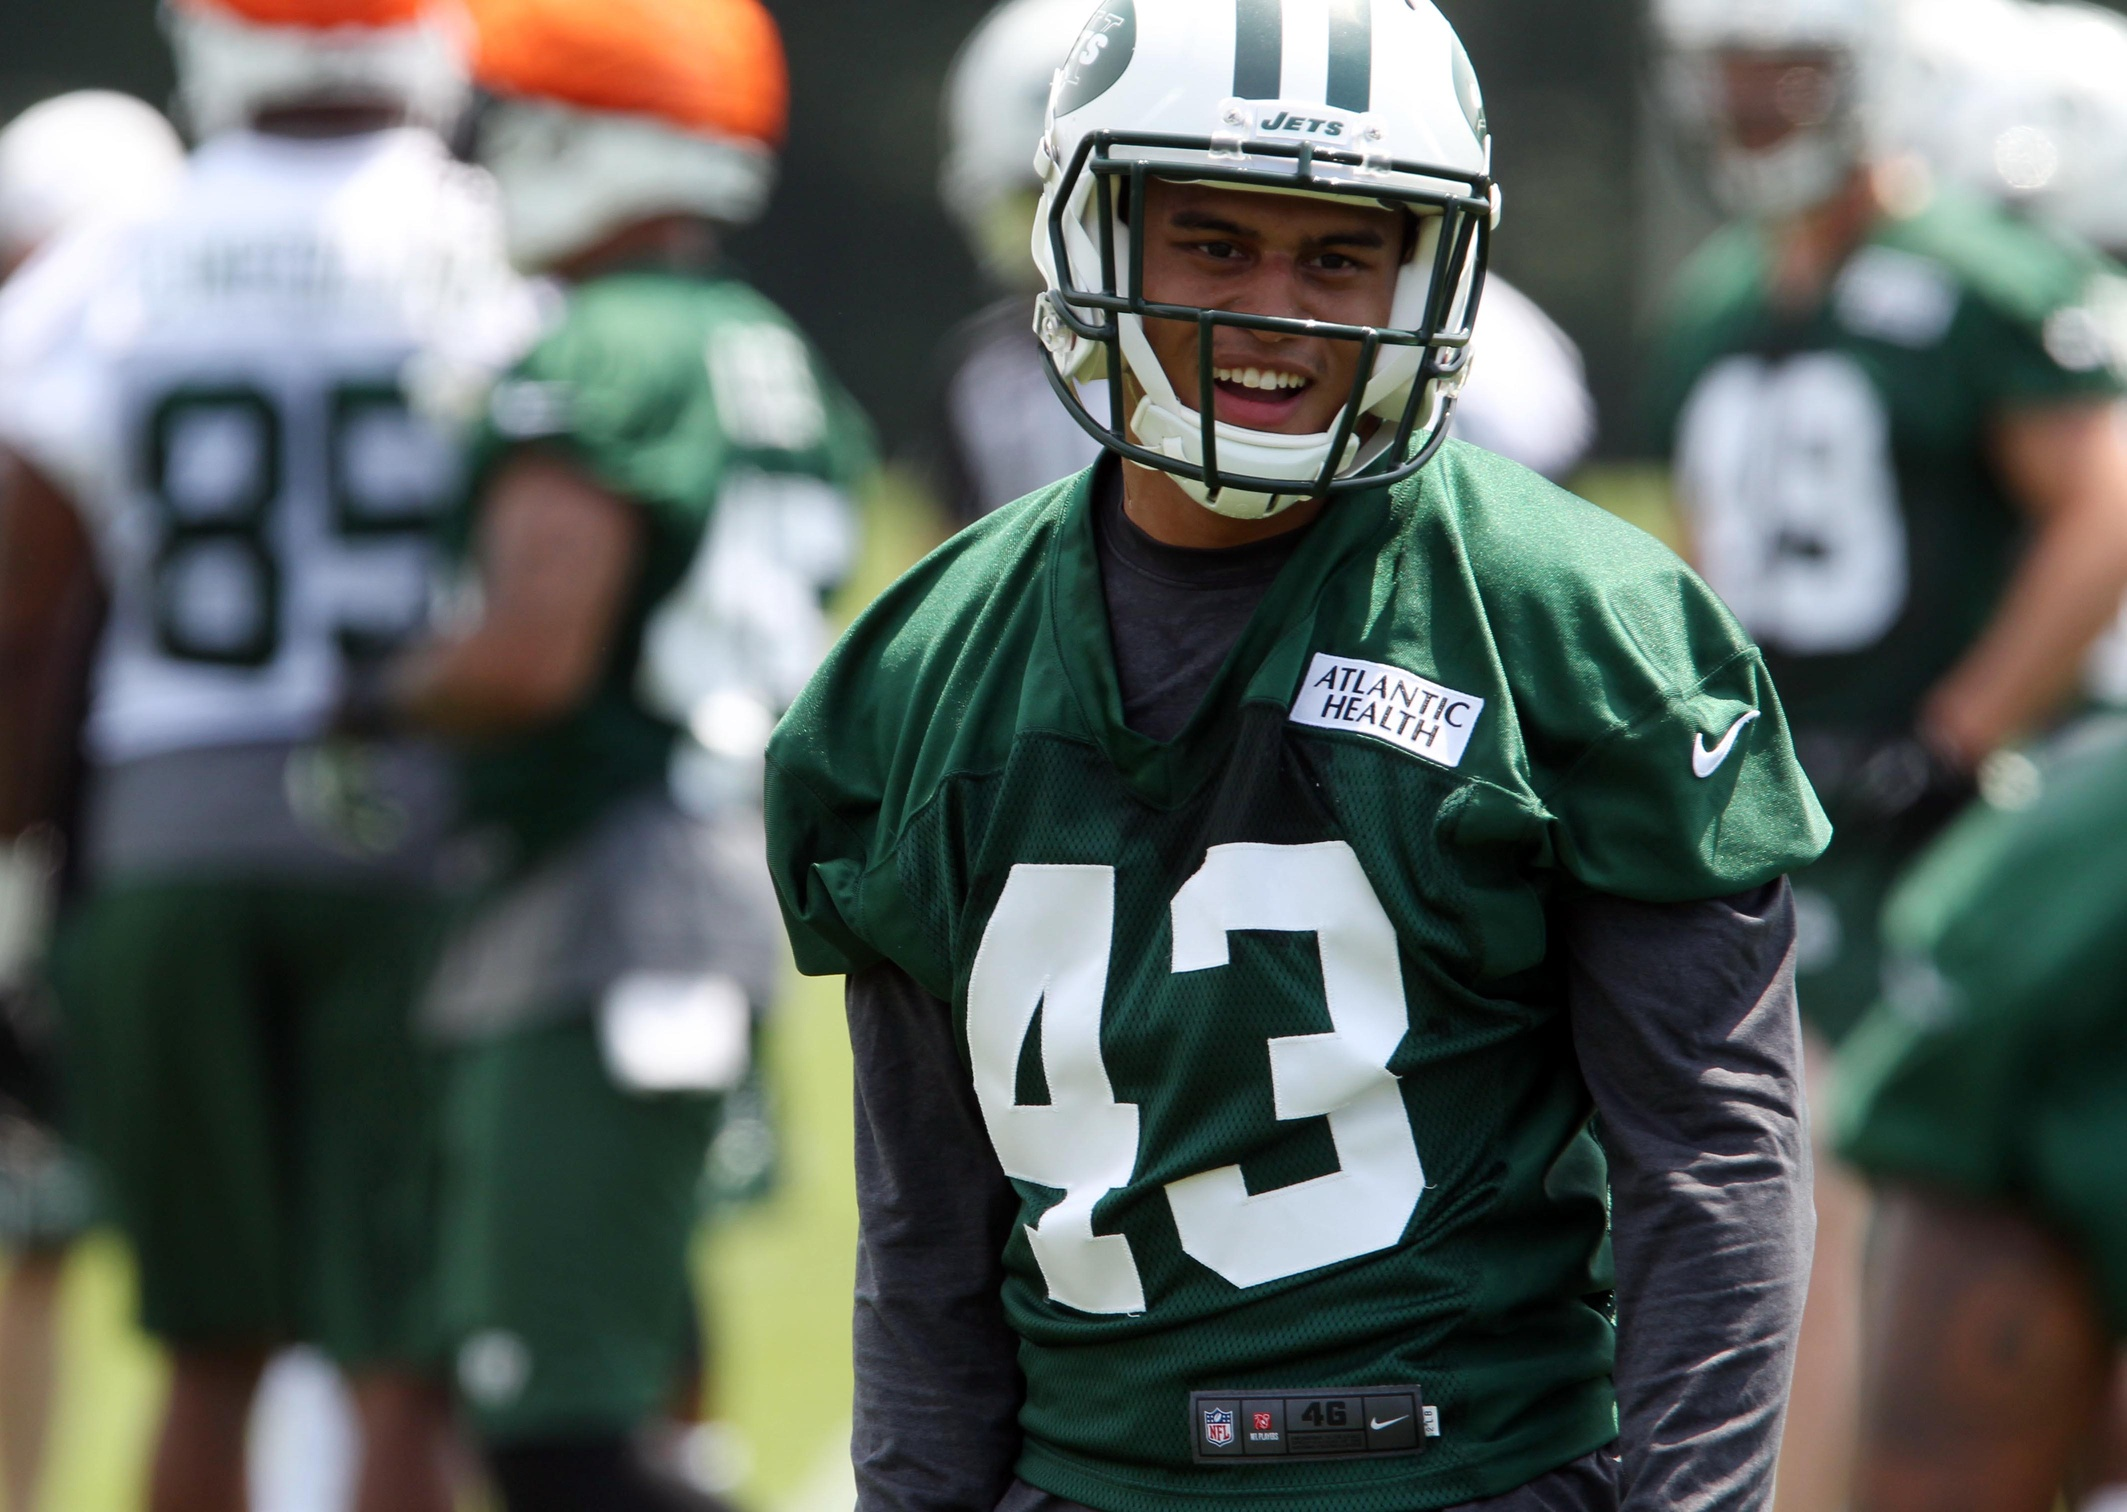 Jets Update Practice Squad; McDougle Returns